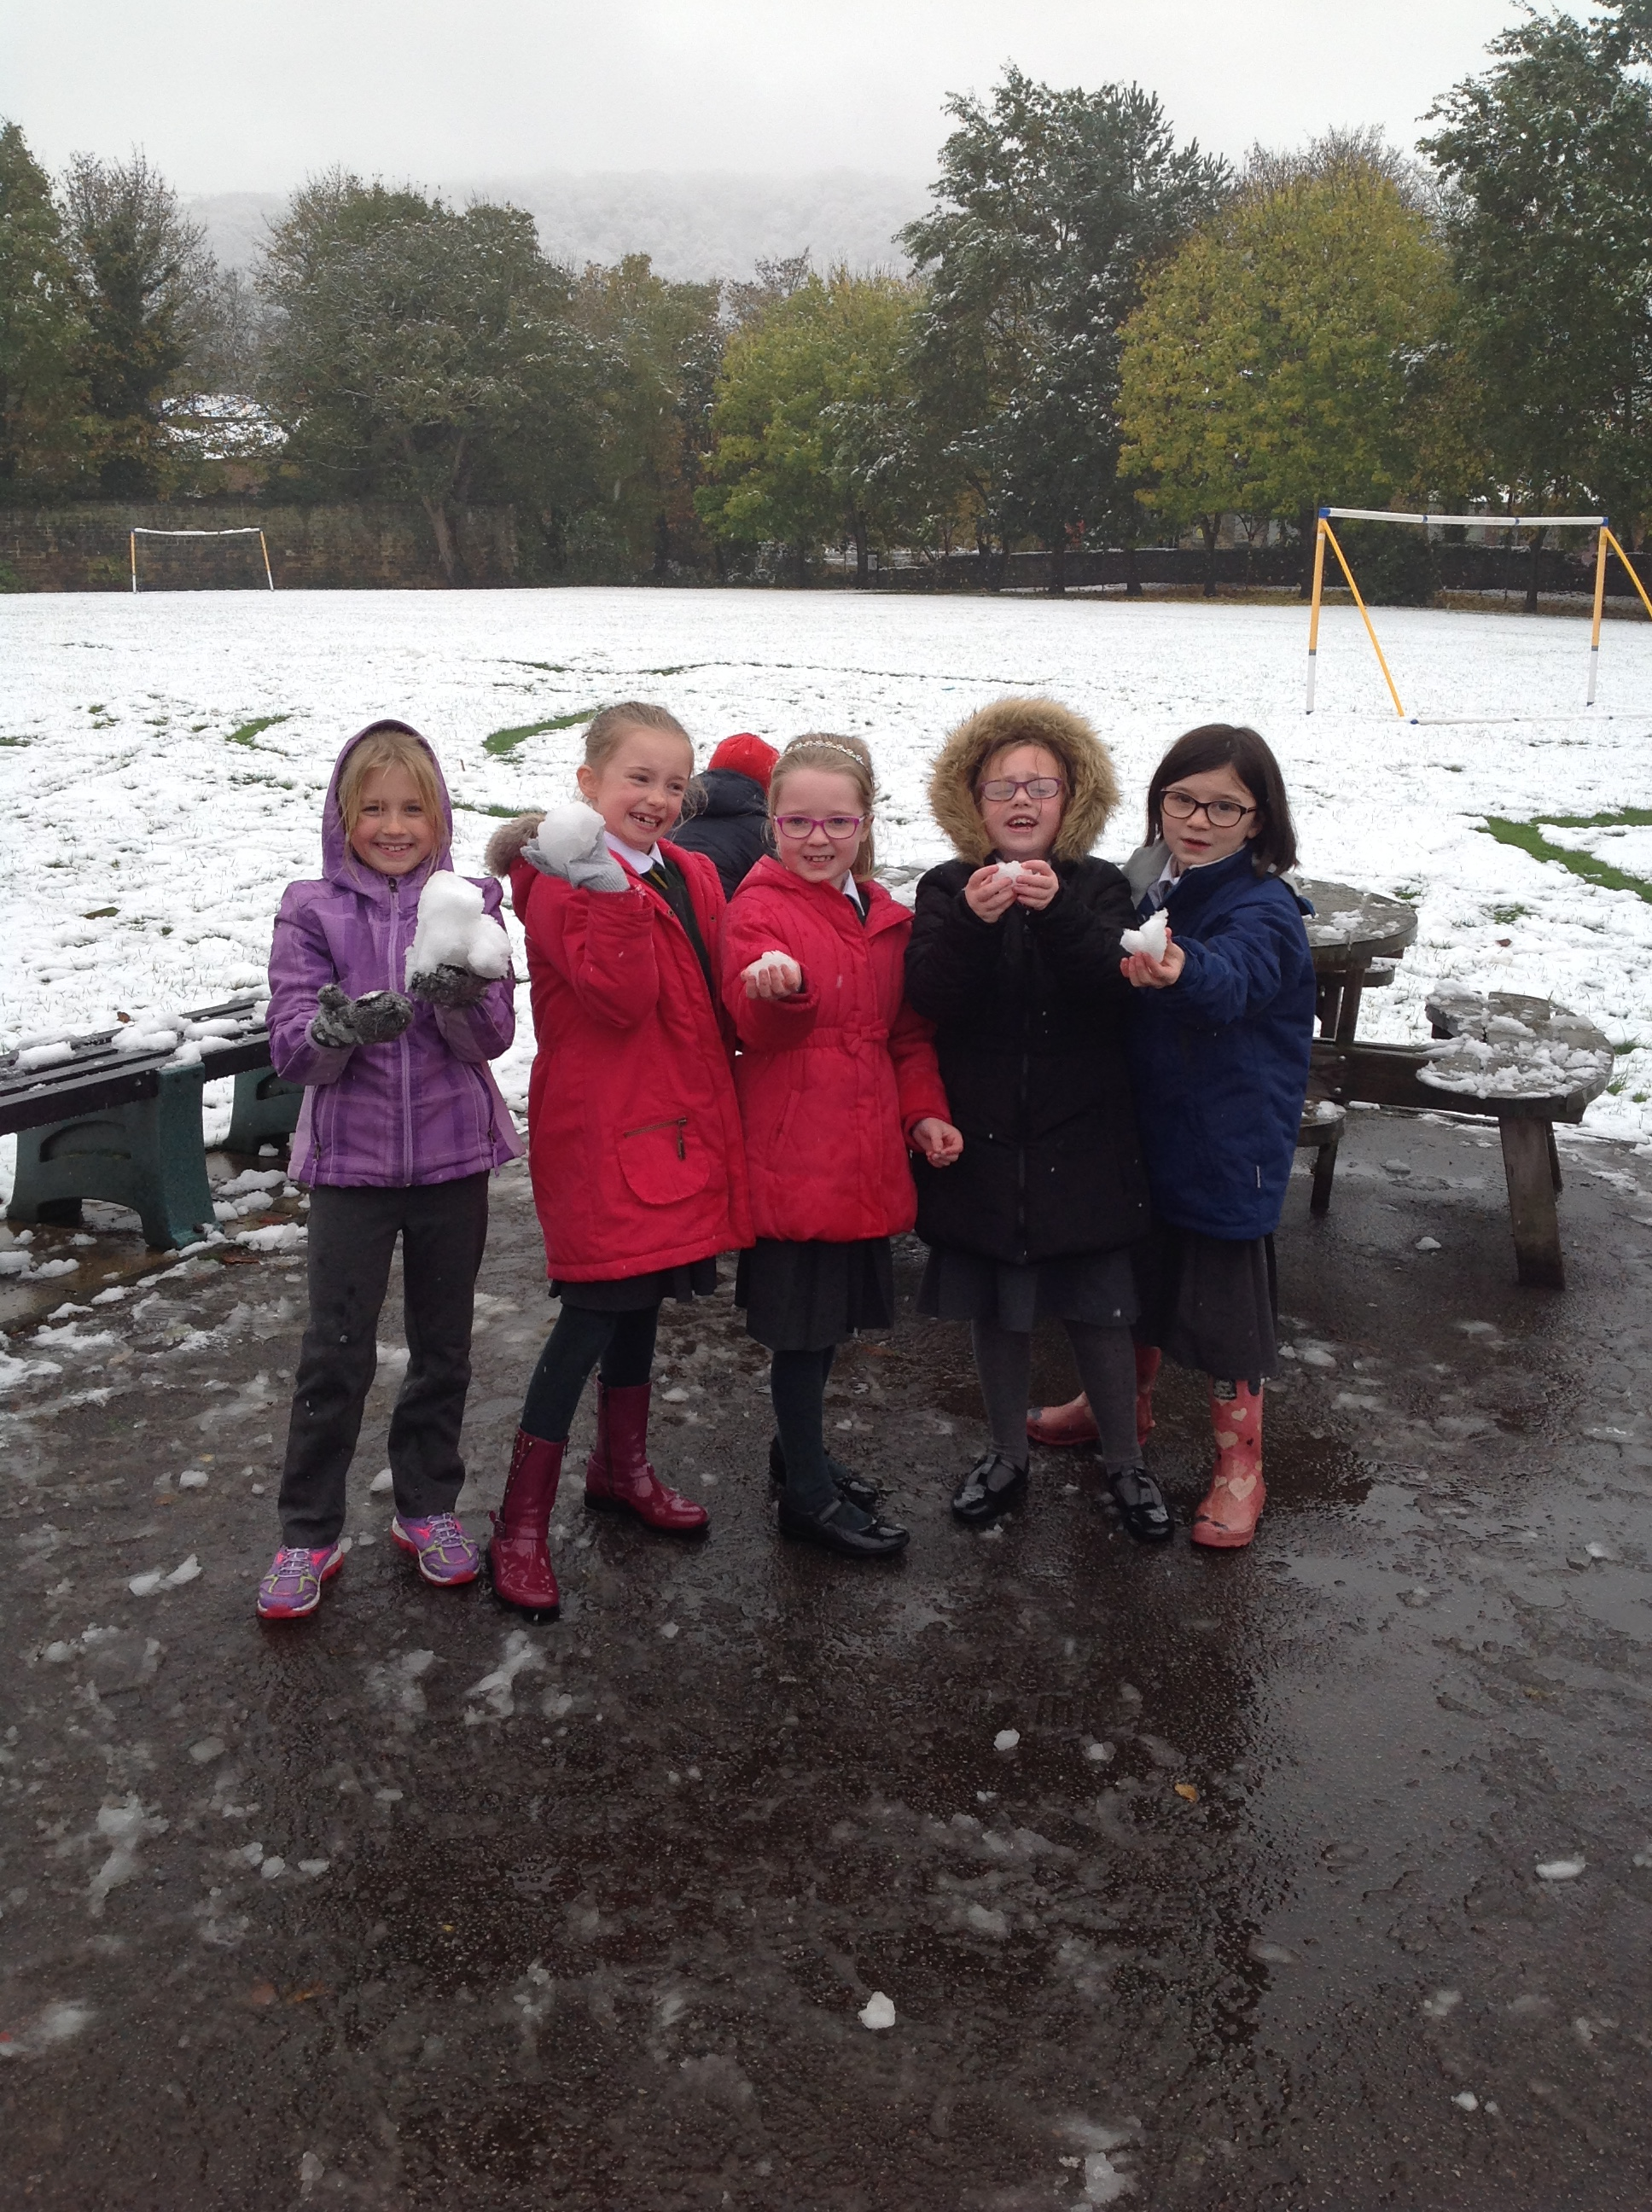 Some of the girls in the snow.